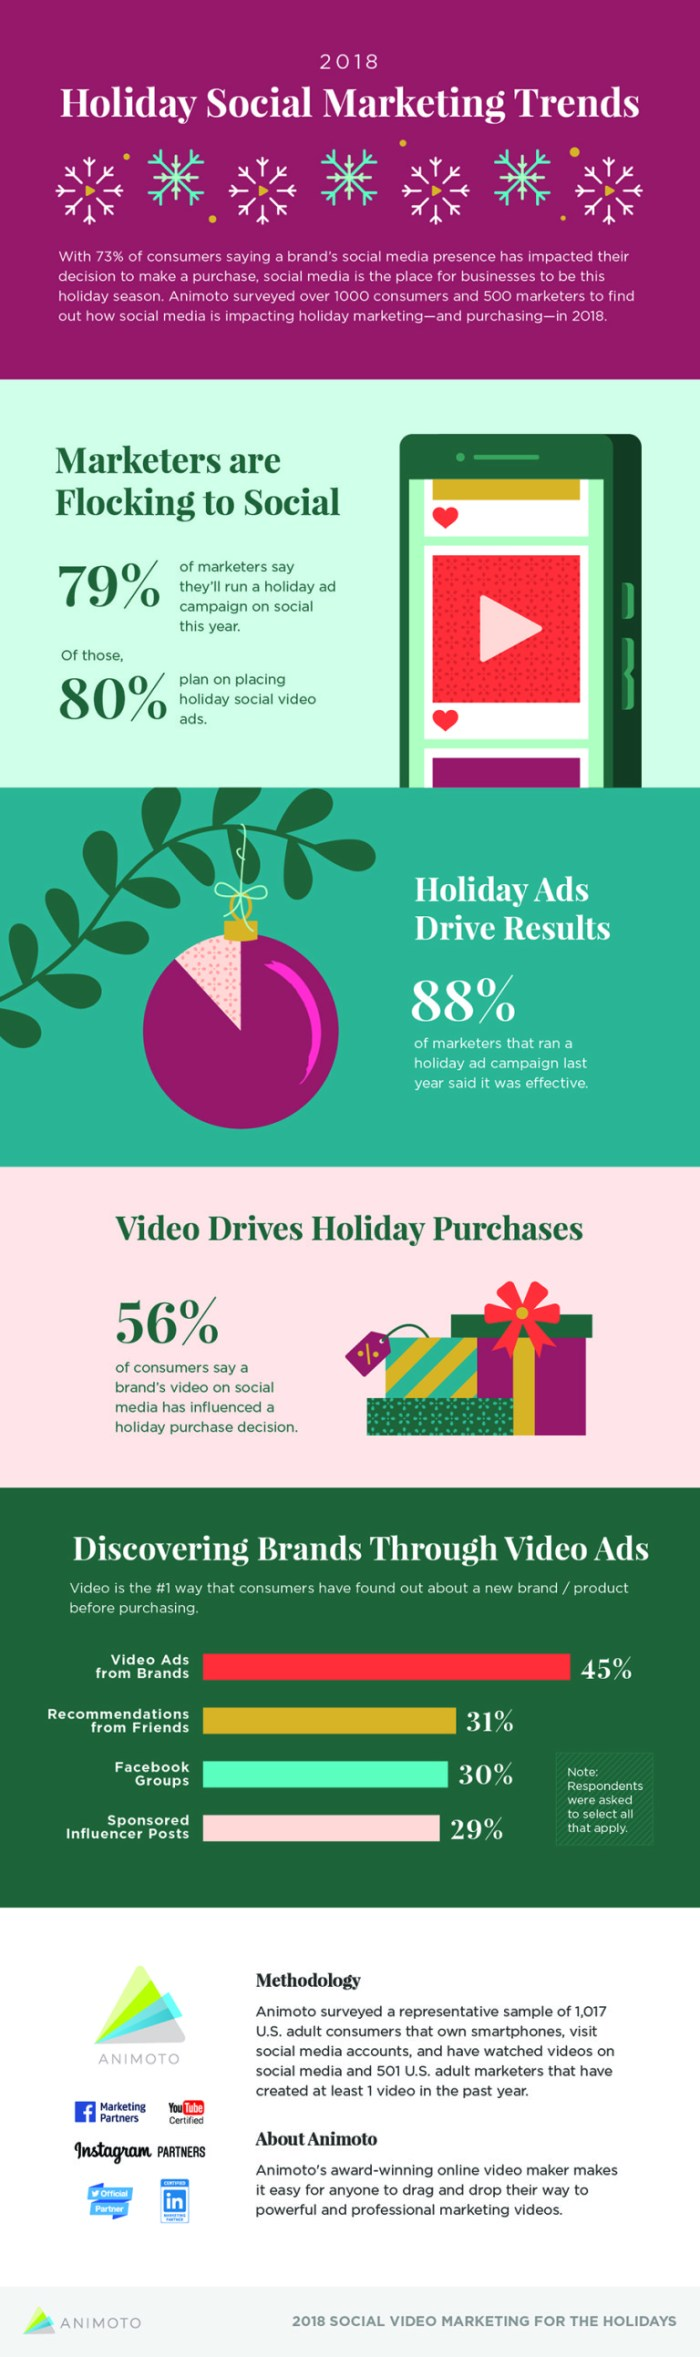 2018-holiday-marketing-trends-infographic-1